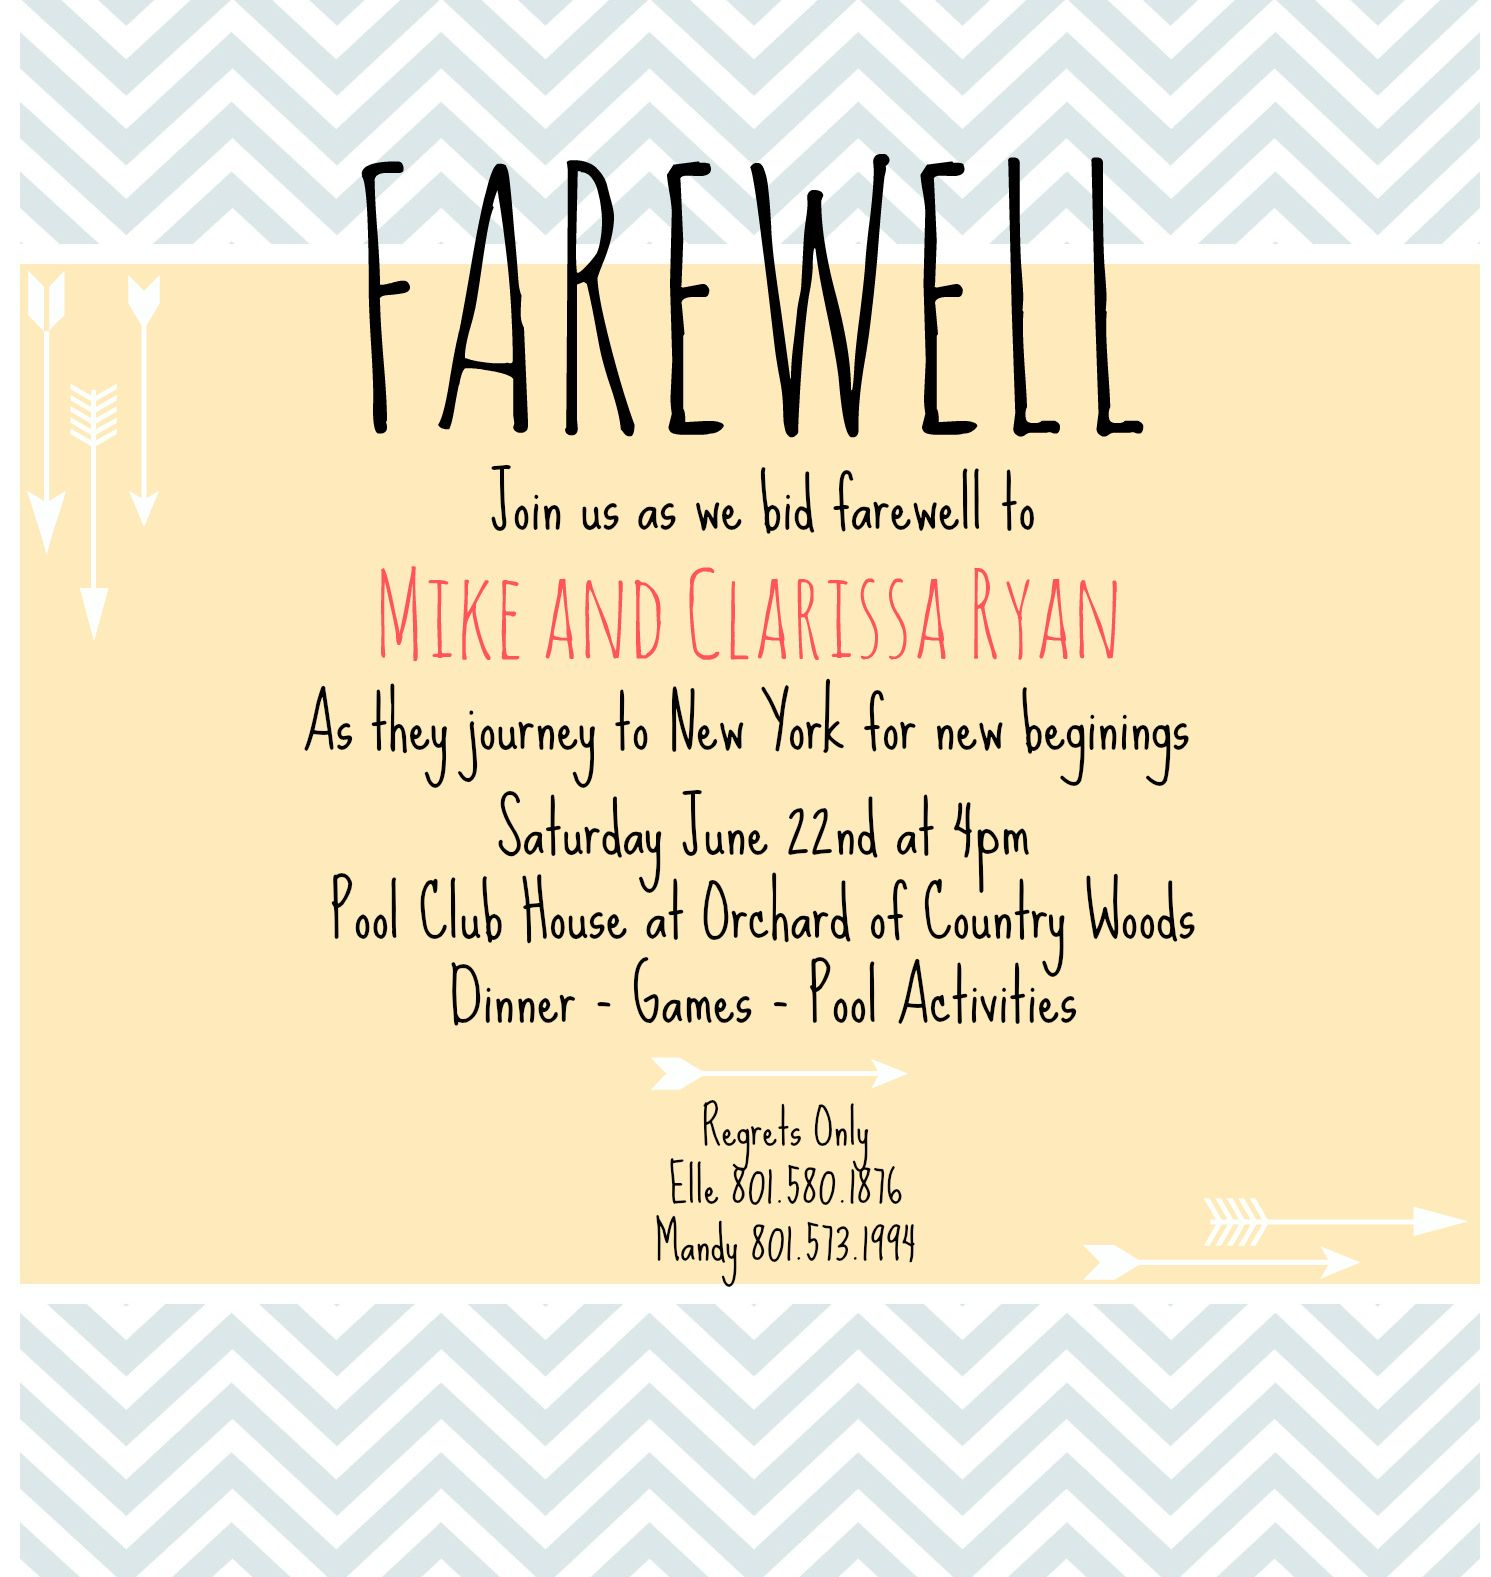 Farewell invite picmonkey creations pinterest farewell farewell invite stopboris Image collections